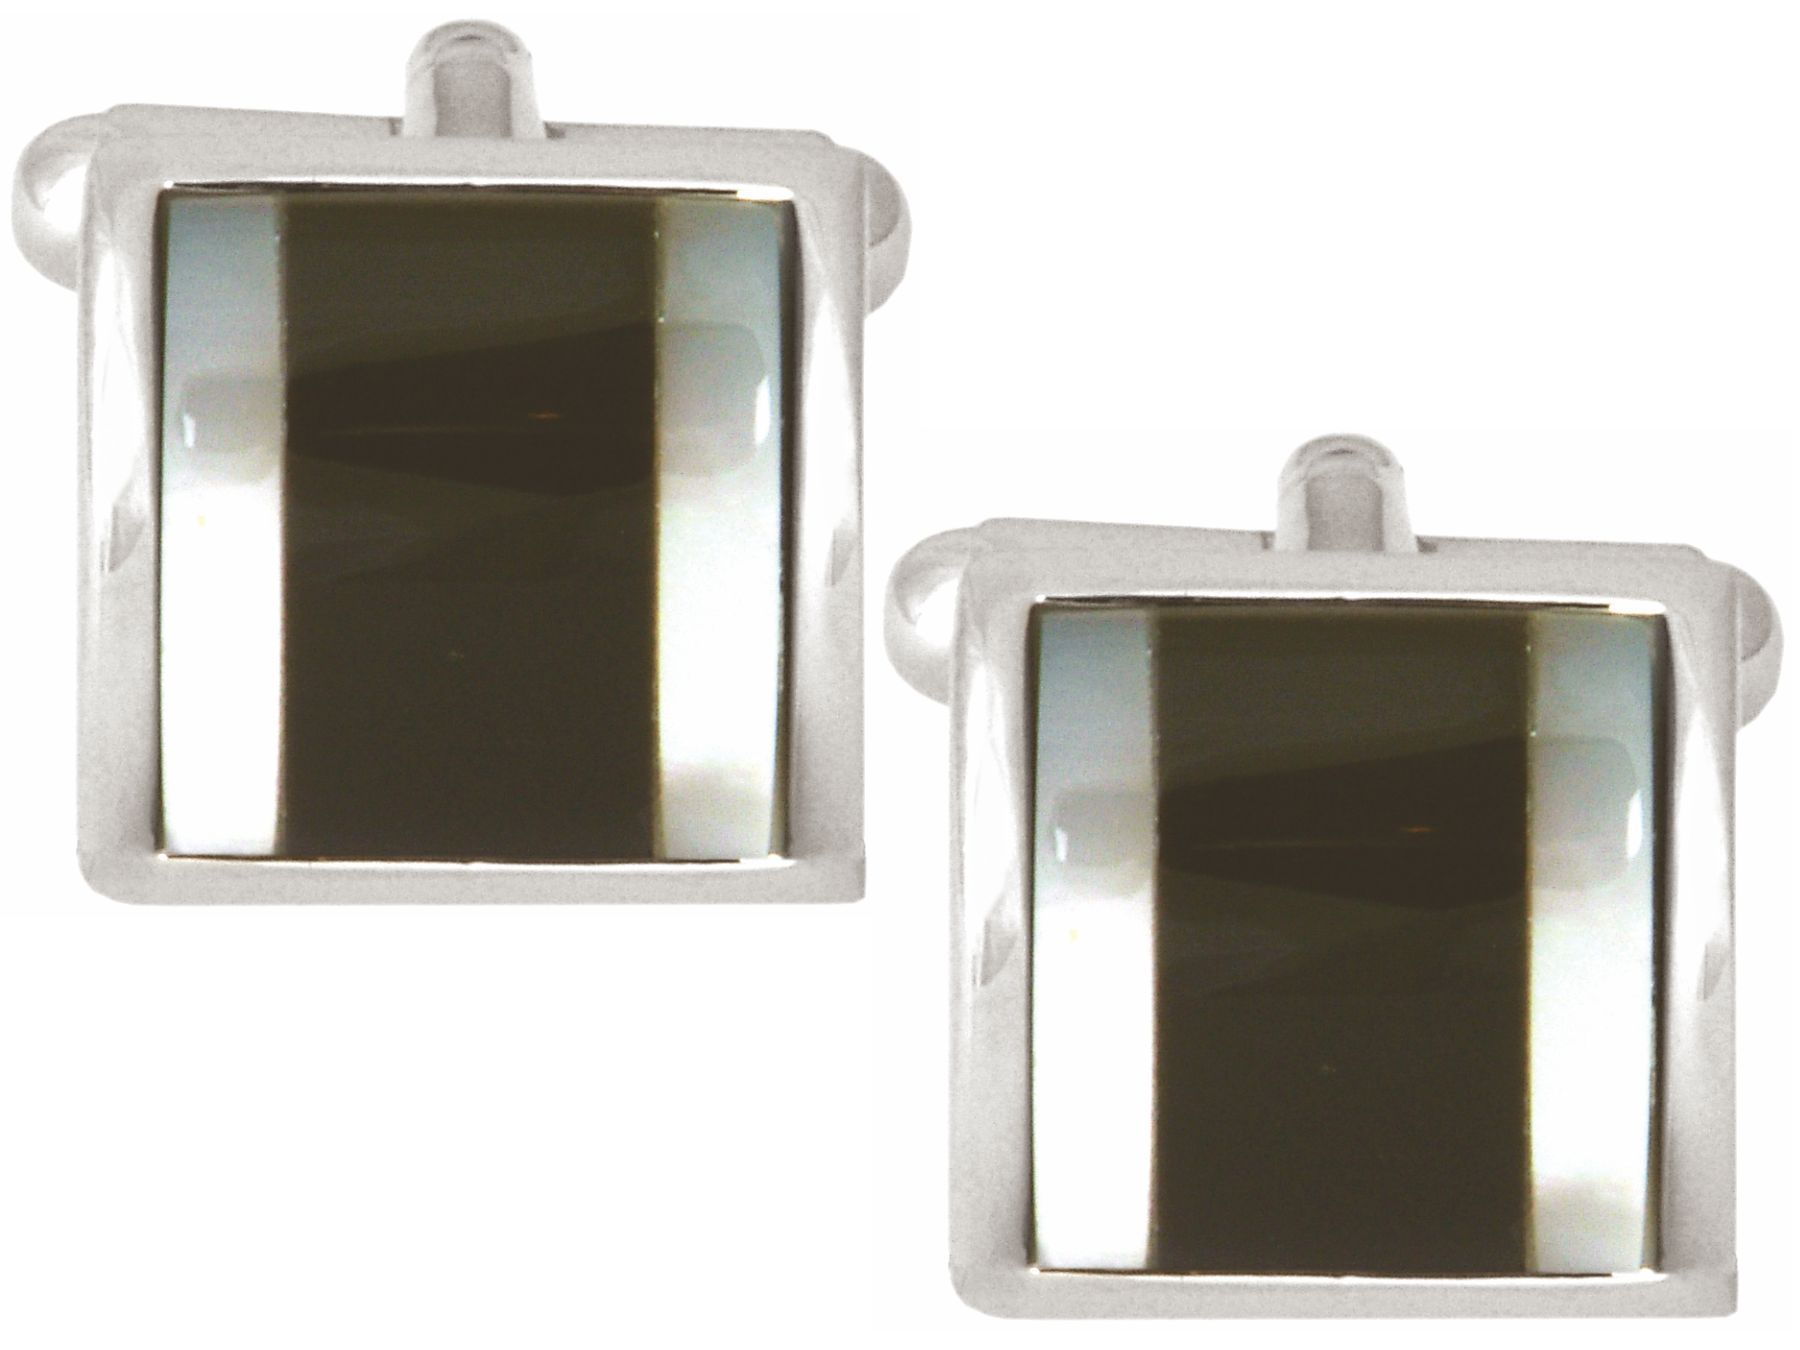 Onyx & Mother of Pearl Square Curved Cufflinks